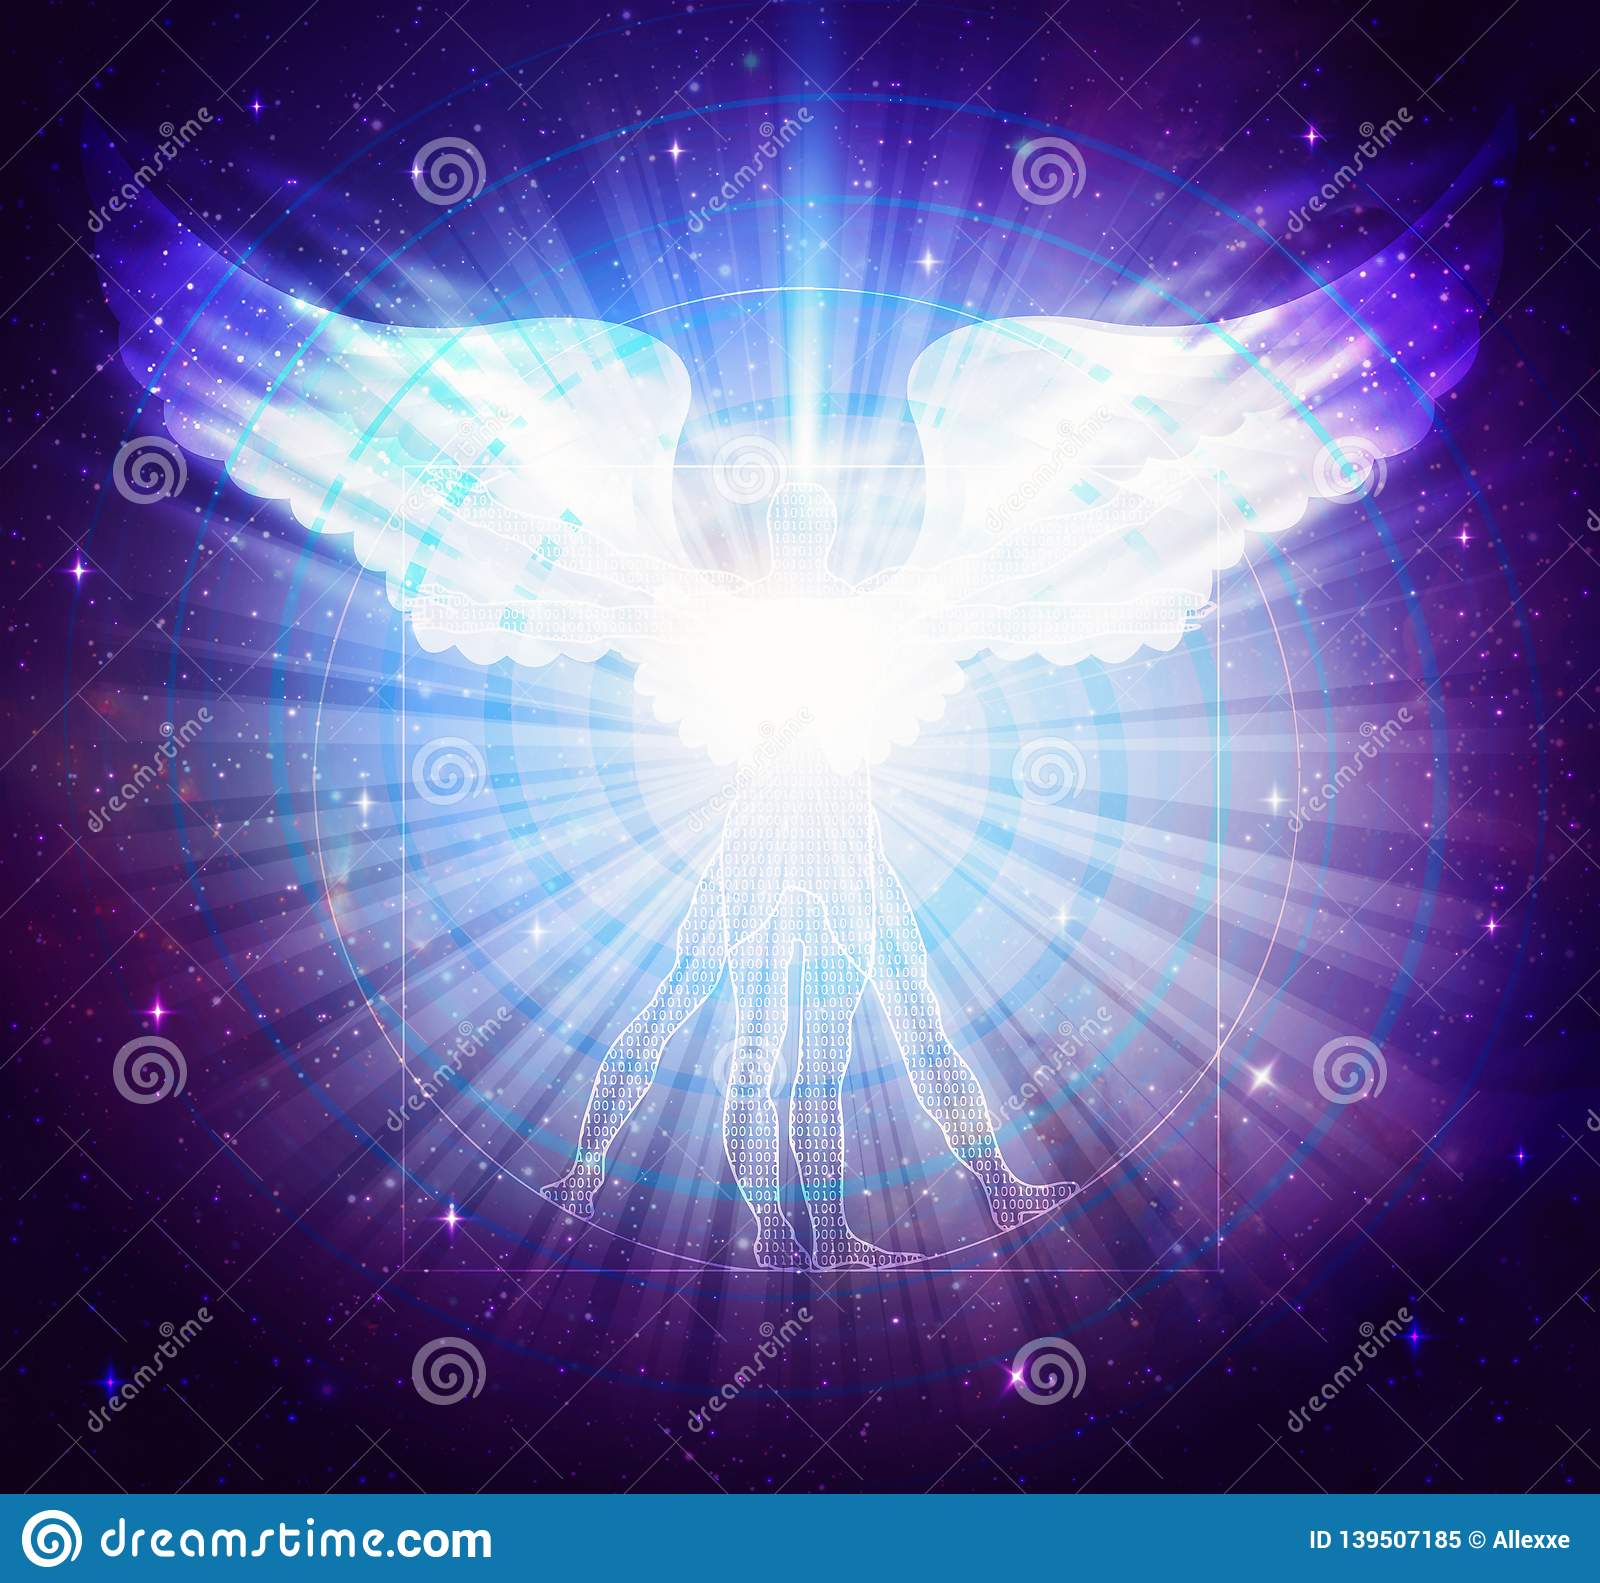 hight resolution of light beings vitruvian human diagram body with binary codes and angel wings glowing white light rays blue and purple background with sparkling stars